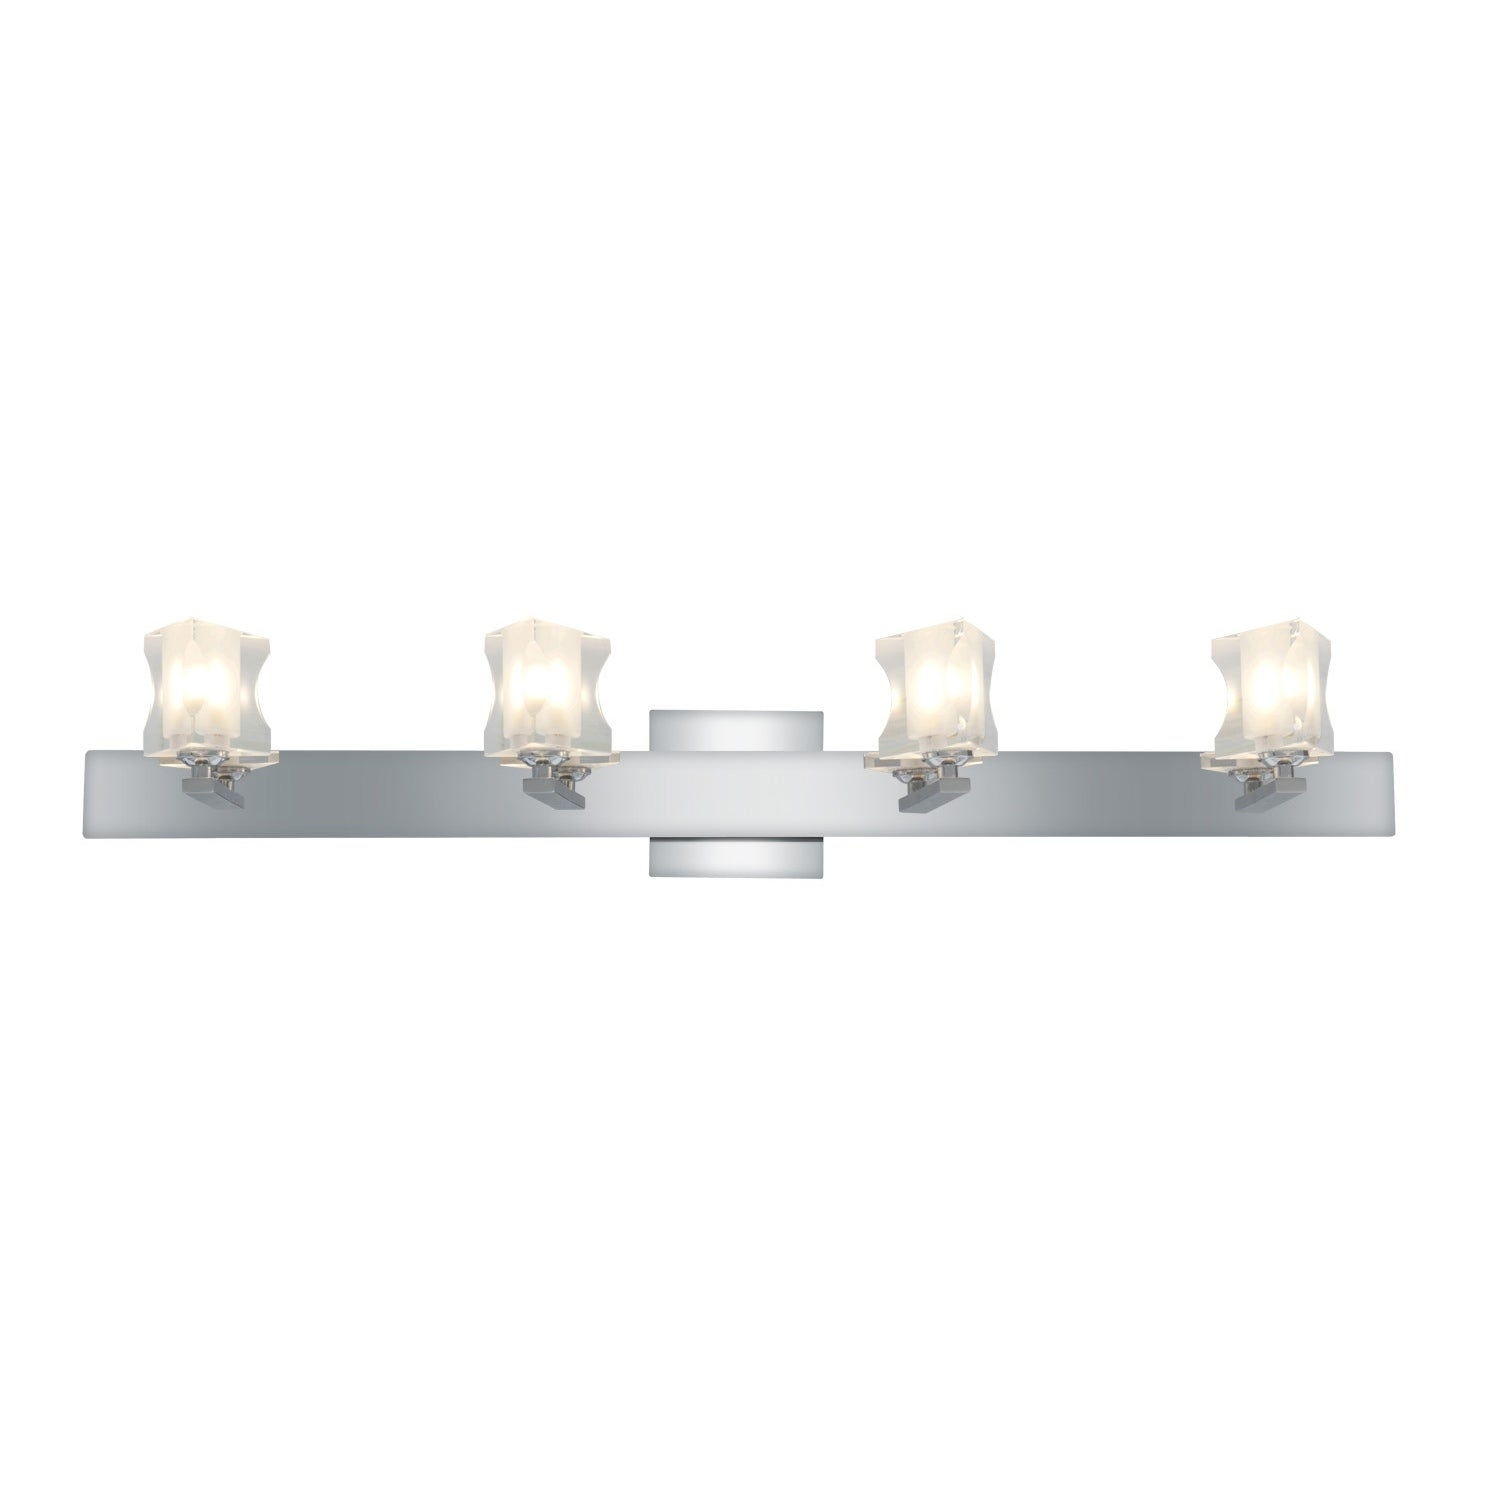 Access Glas'e 4-light Chrome Triangular Vanity Fixture